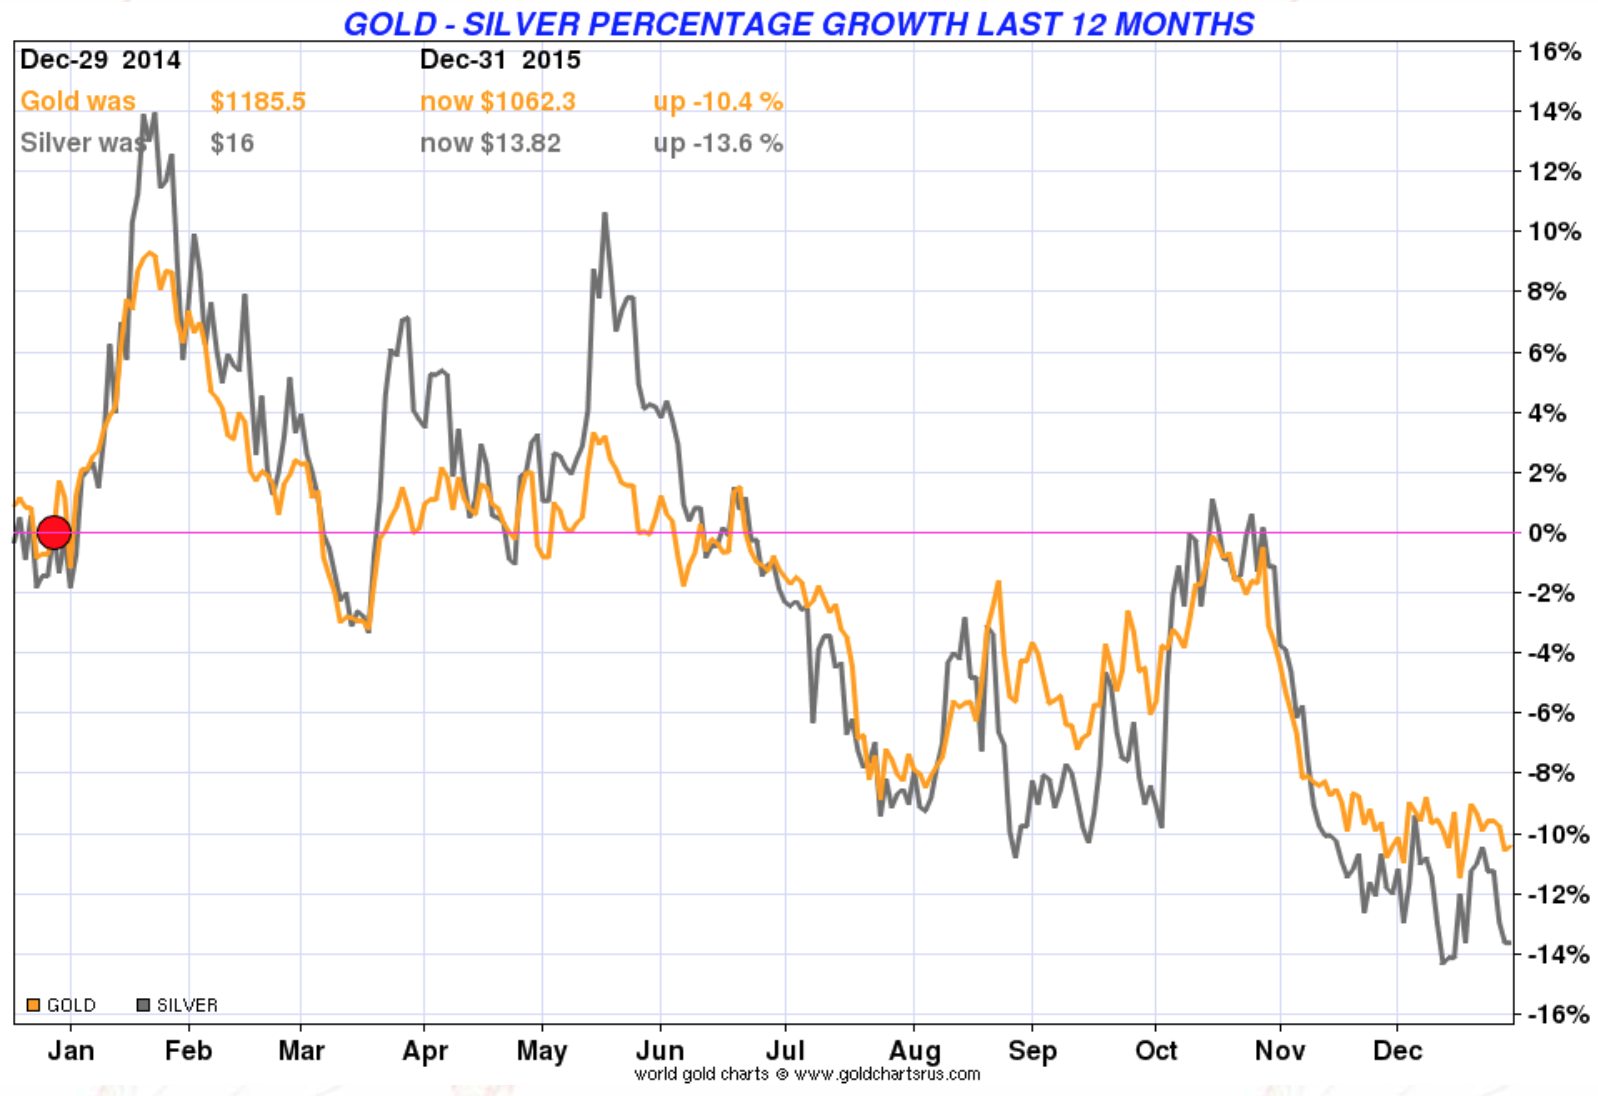 Gold - Silver percentage growth last 12 months